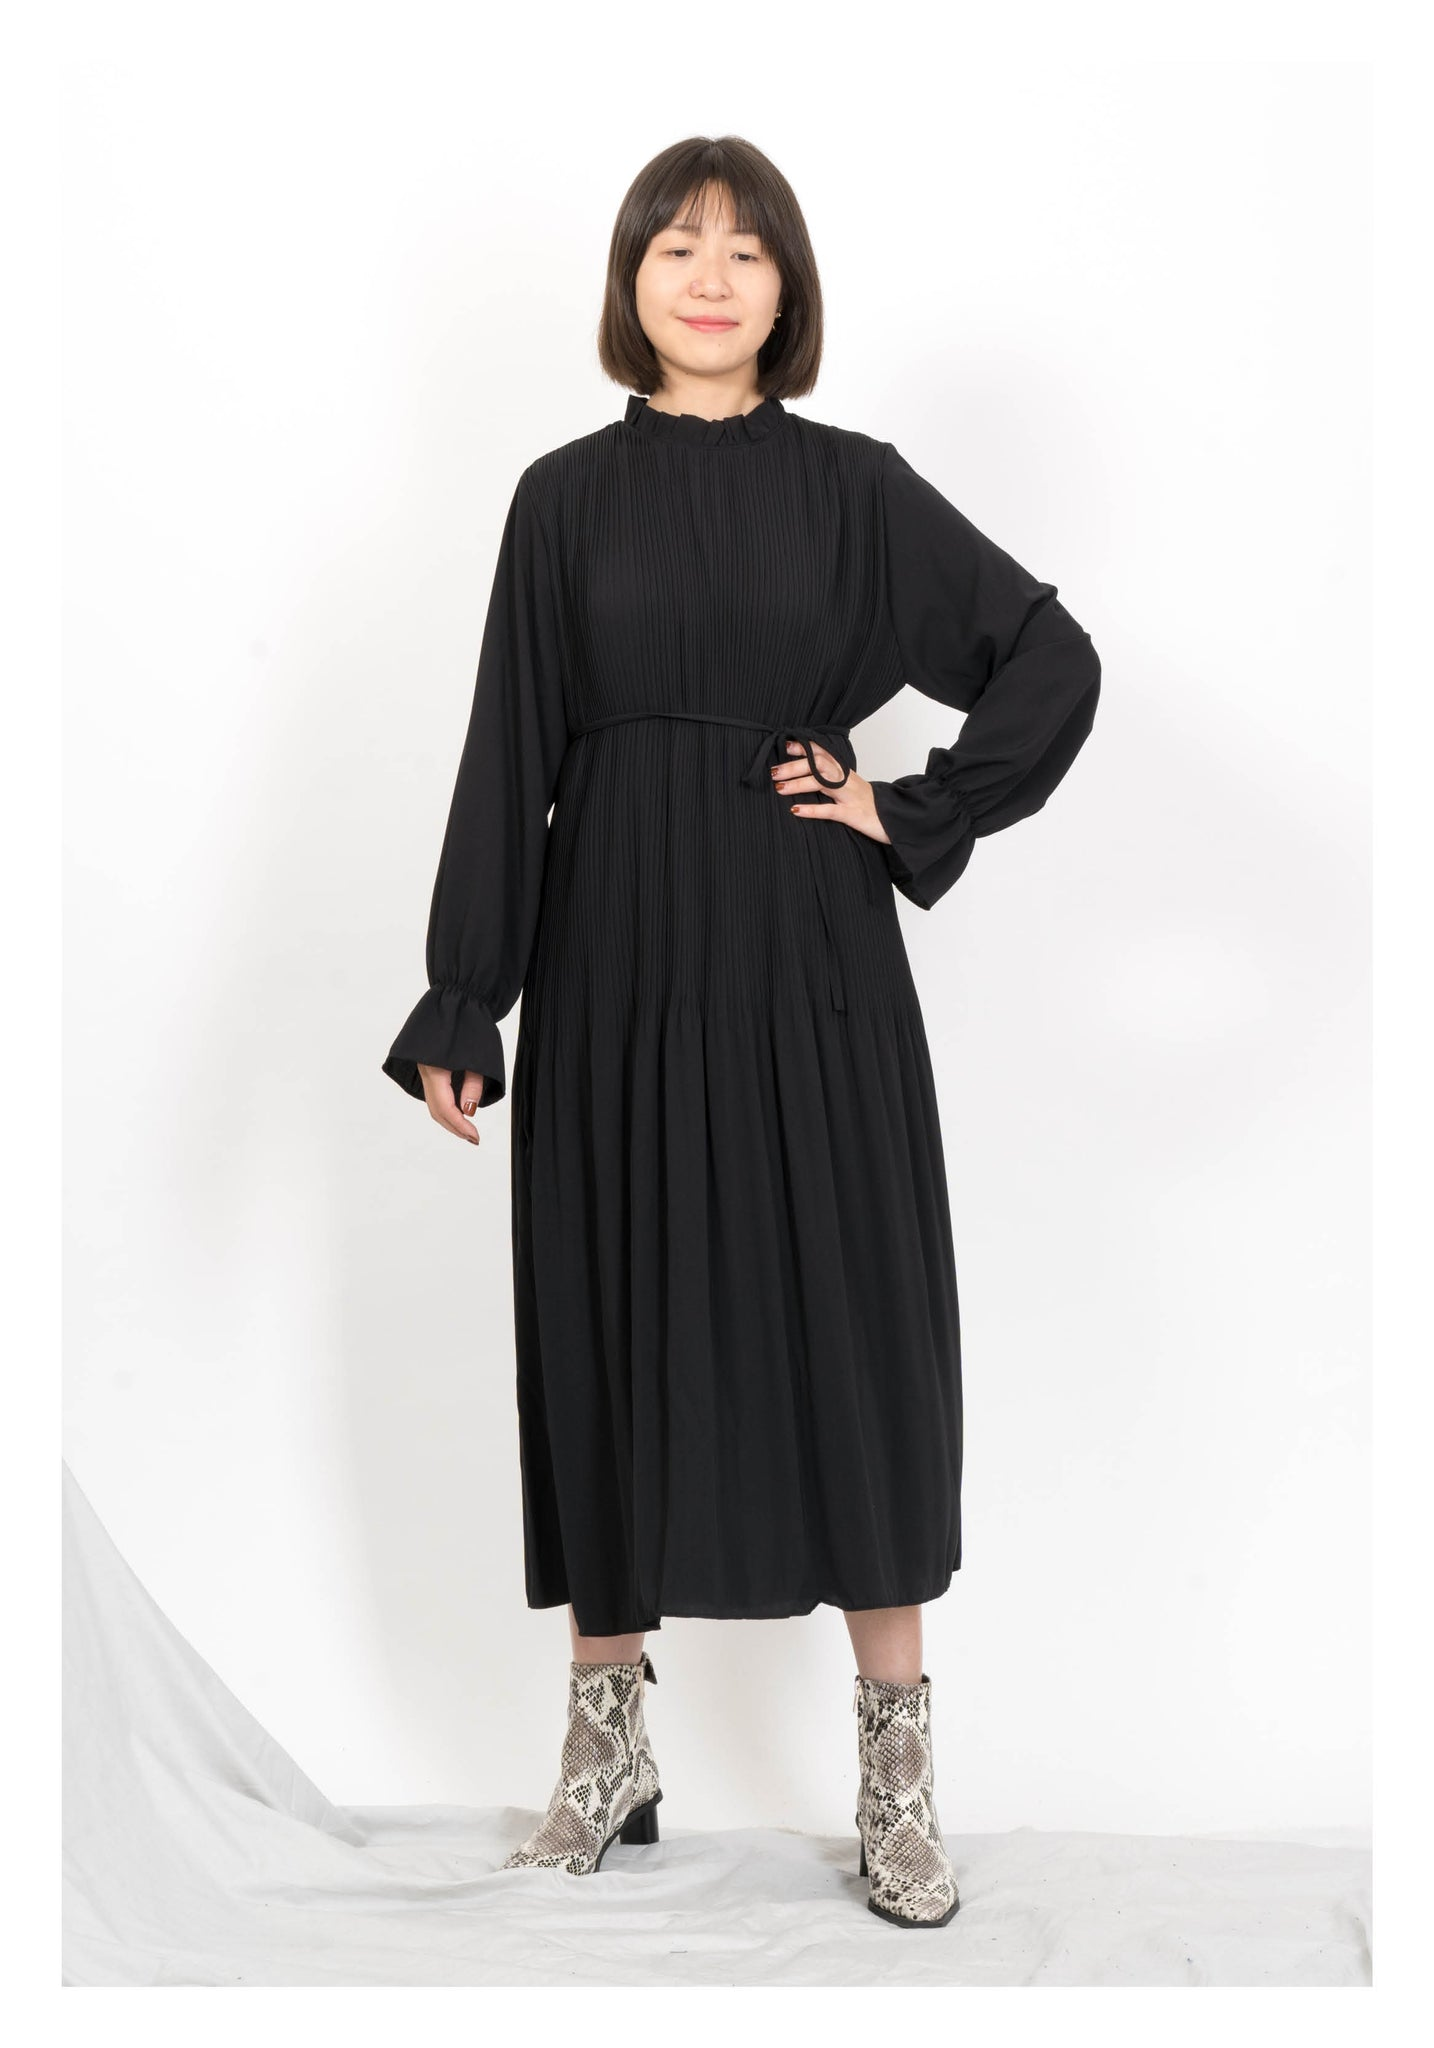 Simple Ruffle Collar Light Dress Black - whoami